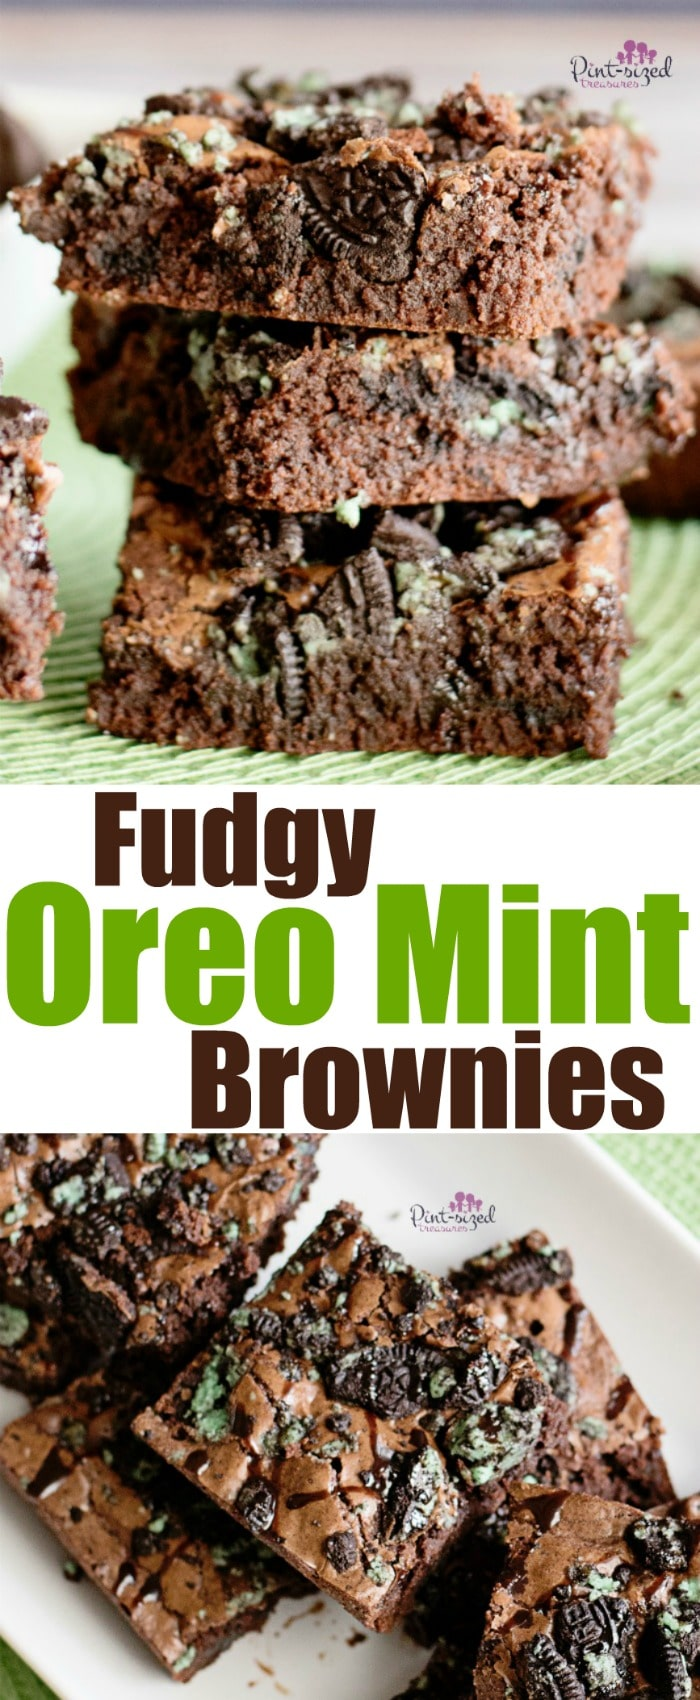 These are my favorite Oreo Mint Brownies because they're crazy fudgy and have a fun, cookie crunch! The mint flavor pairs perfect with the rich chocolate!  #Oreomintbrownies #chocolatemintbrownies #brownierecipe #oreobrownies #mintOreobrownies #Fudgybrownies #easybrownies #bestbrownierecipe #chocolatemintoreobrownies